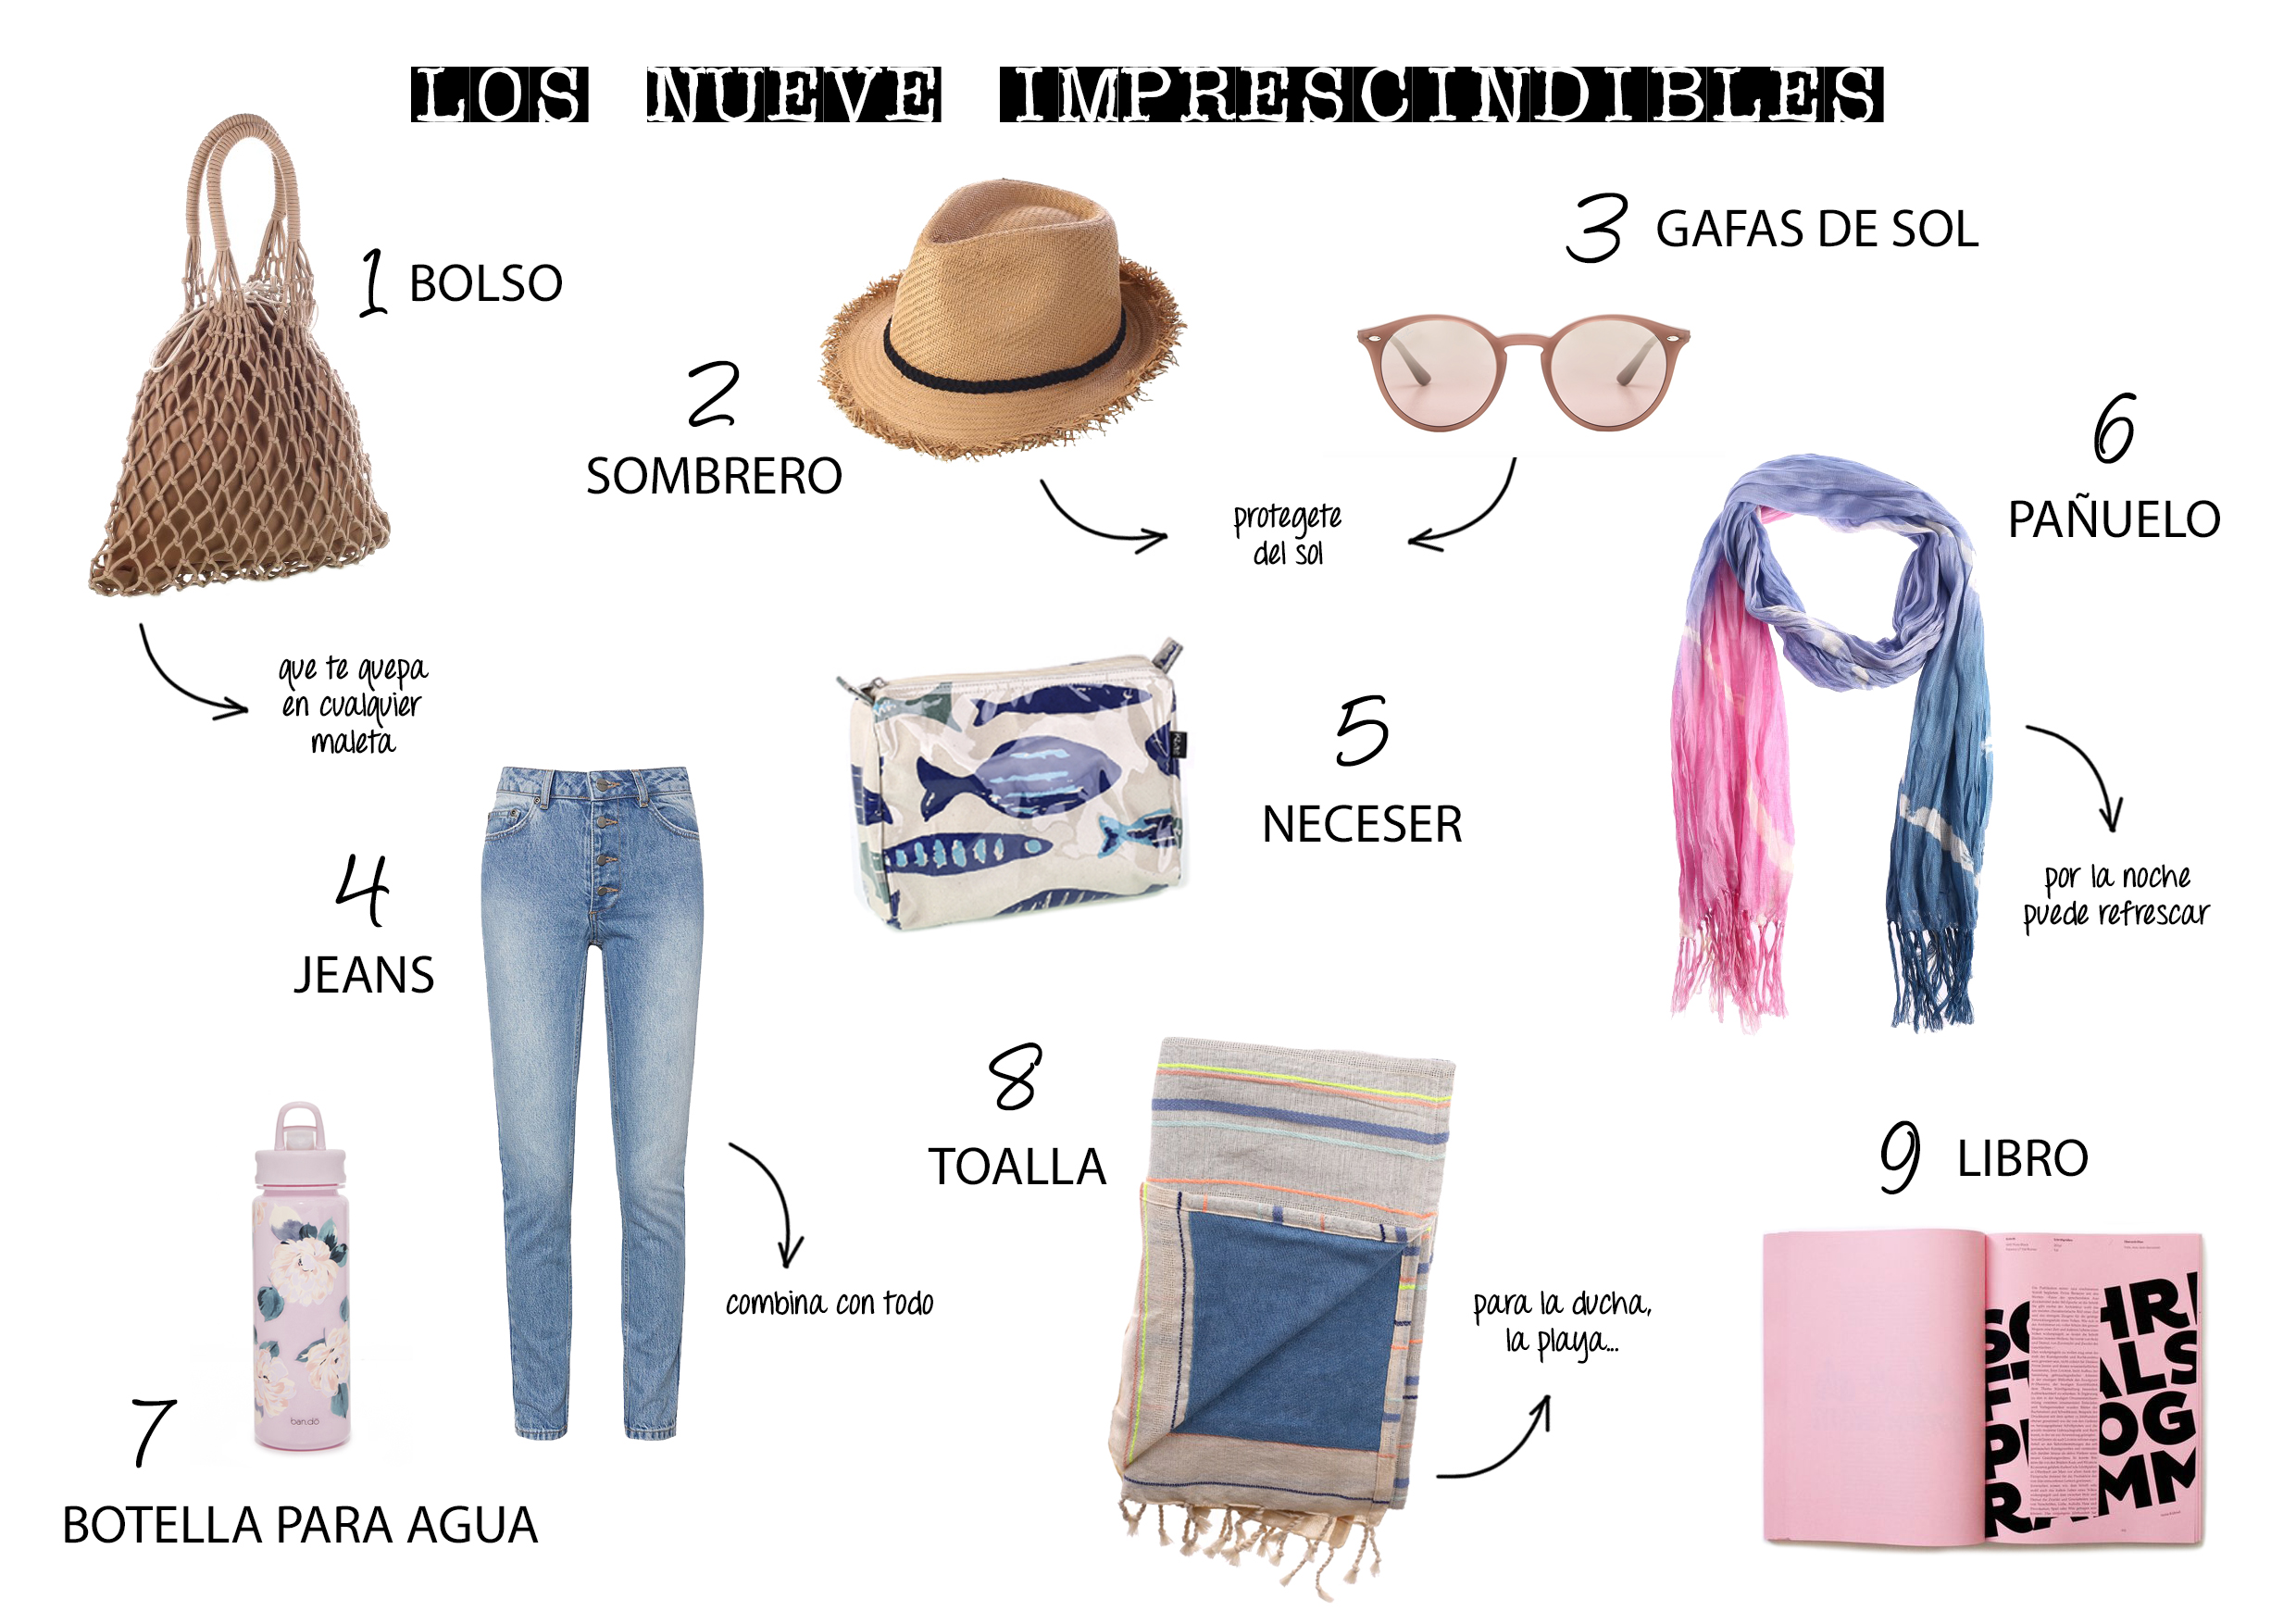 Kbas blog 9 imprescindibles maleta